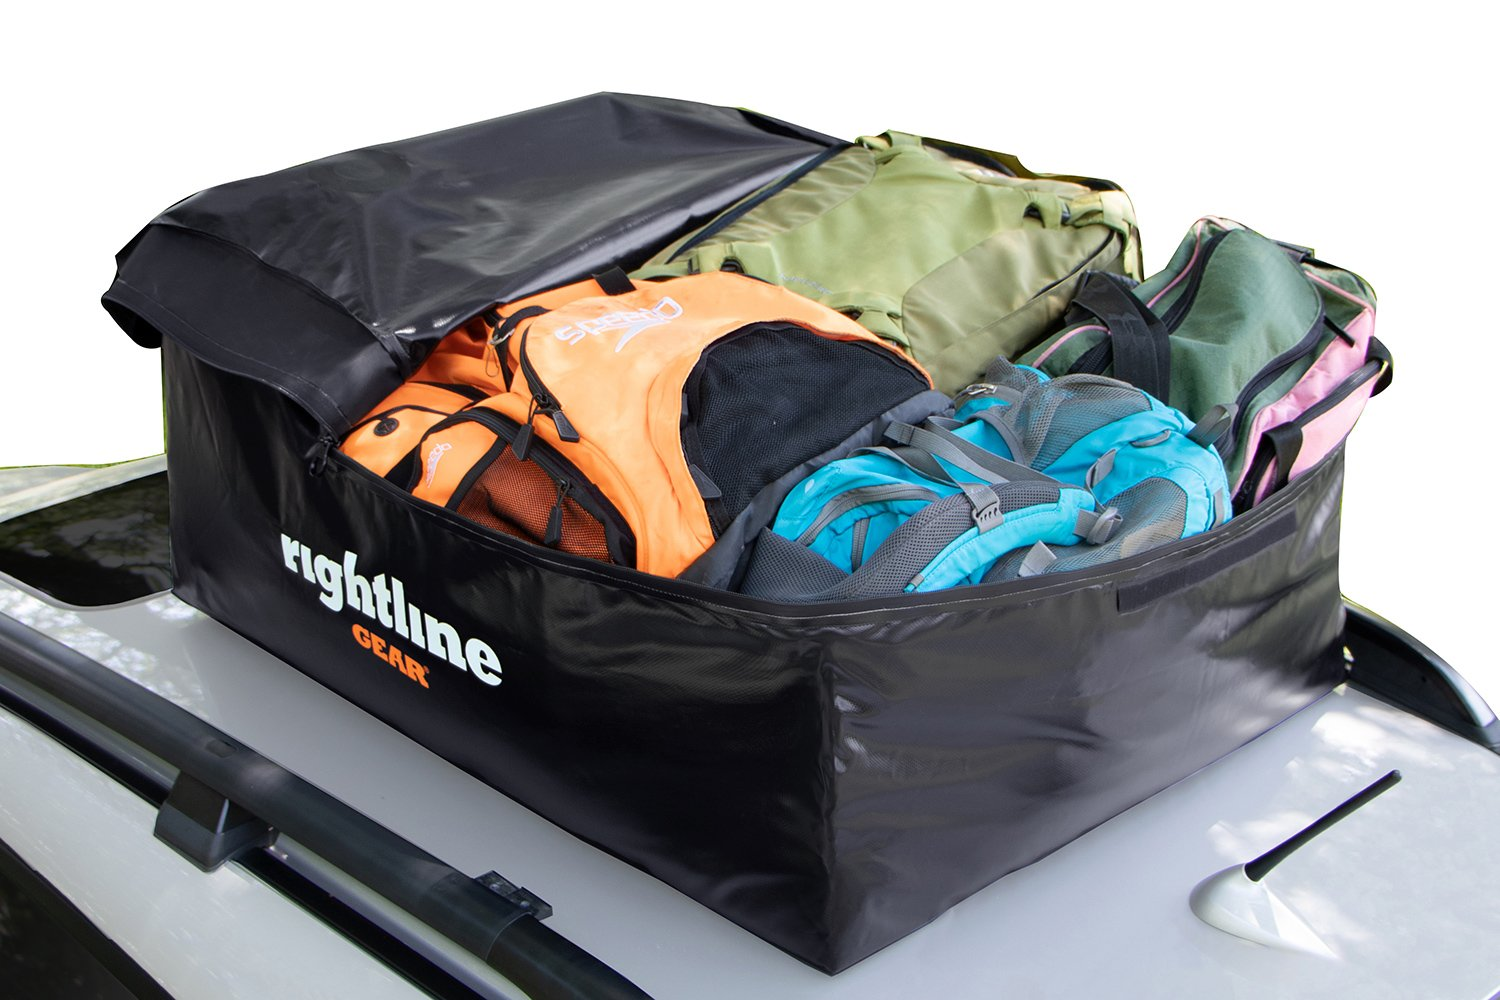 Rightline Gear Sport Jr. Car Top Carrier - Free Shipping